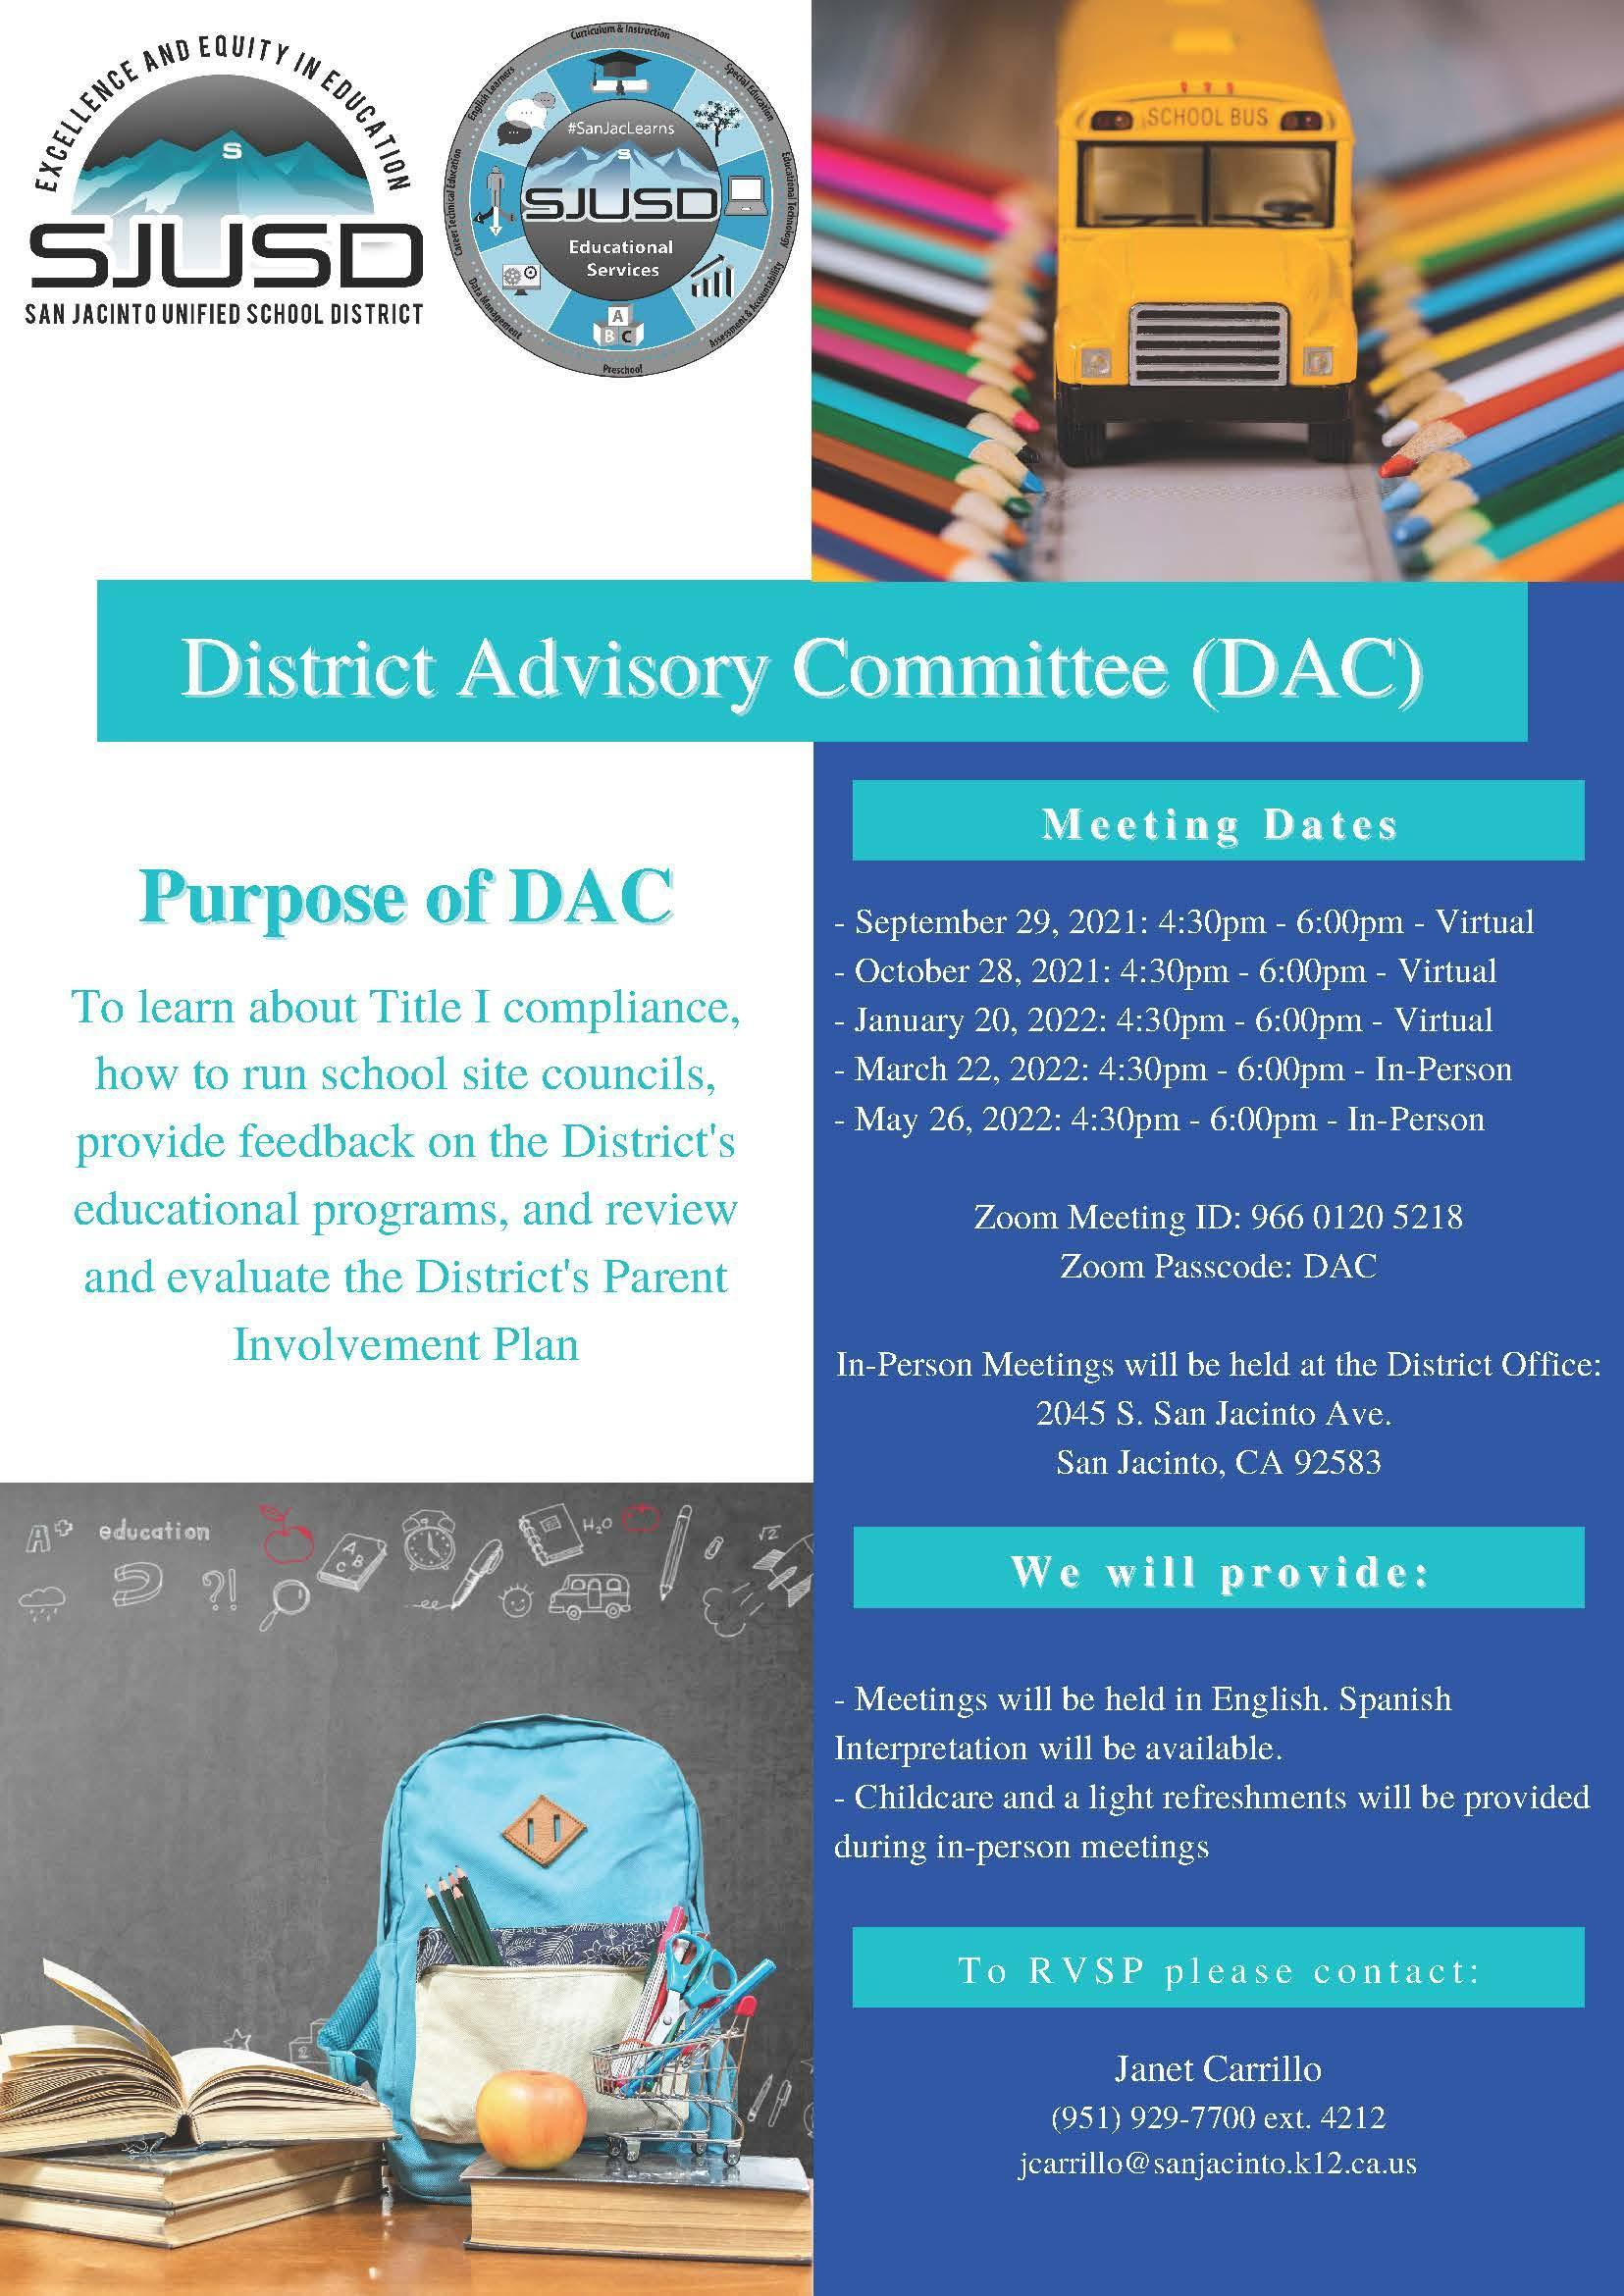 DAC Flyer with meeting info for 2021-2022